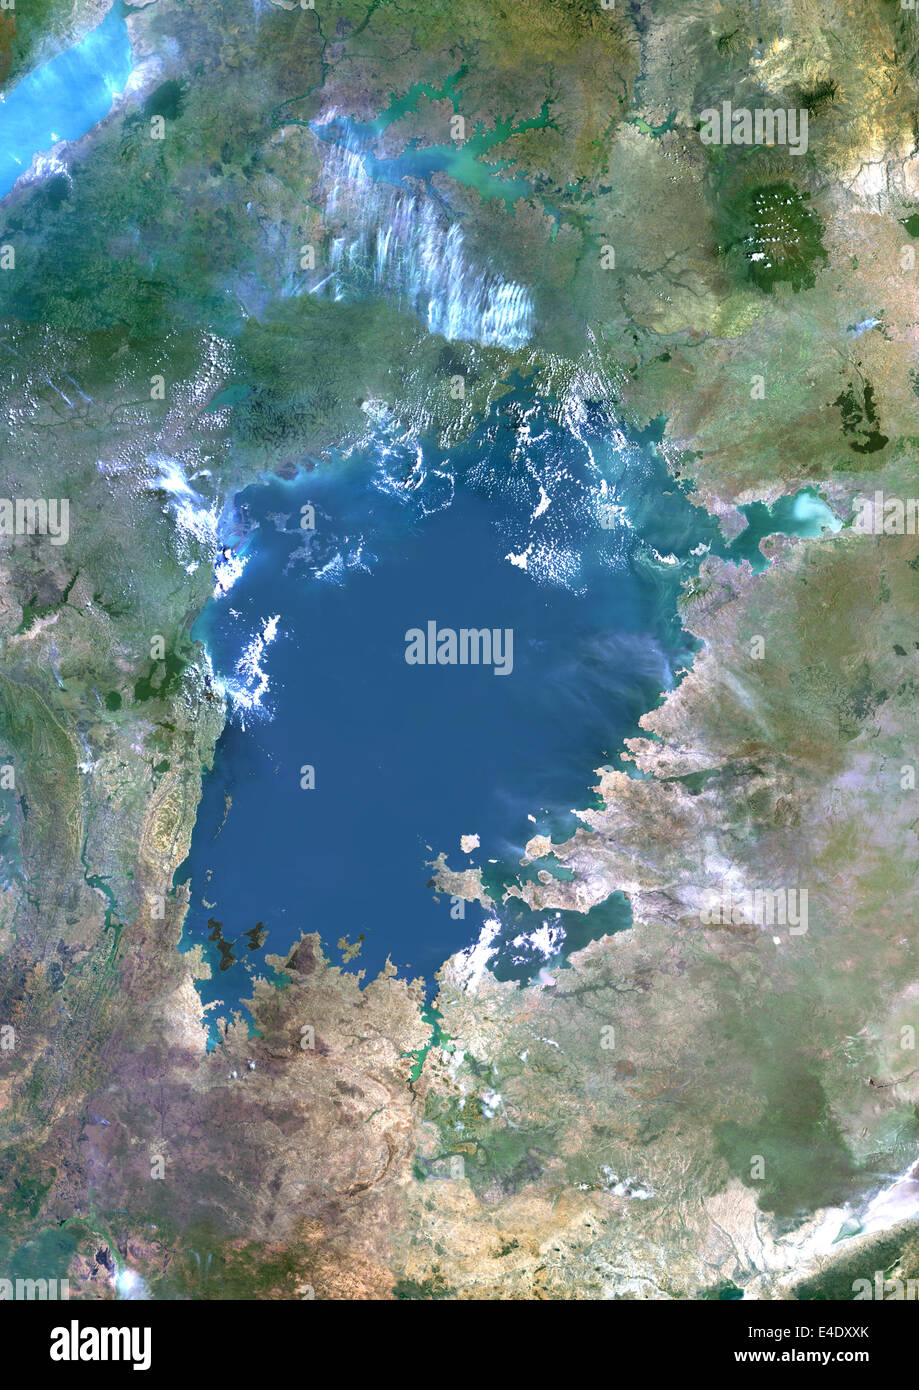 Map Of Africa Lake Victoria.Lake Victoria Africa Map Stock Photos Lake Victoria Africa Map